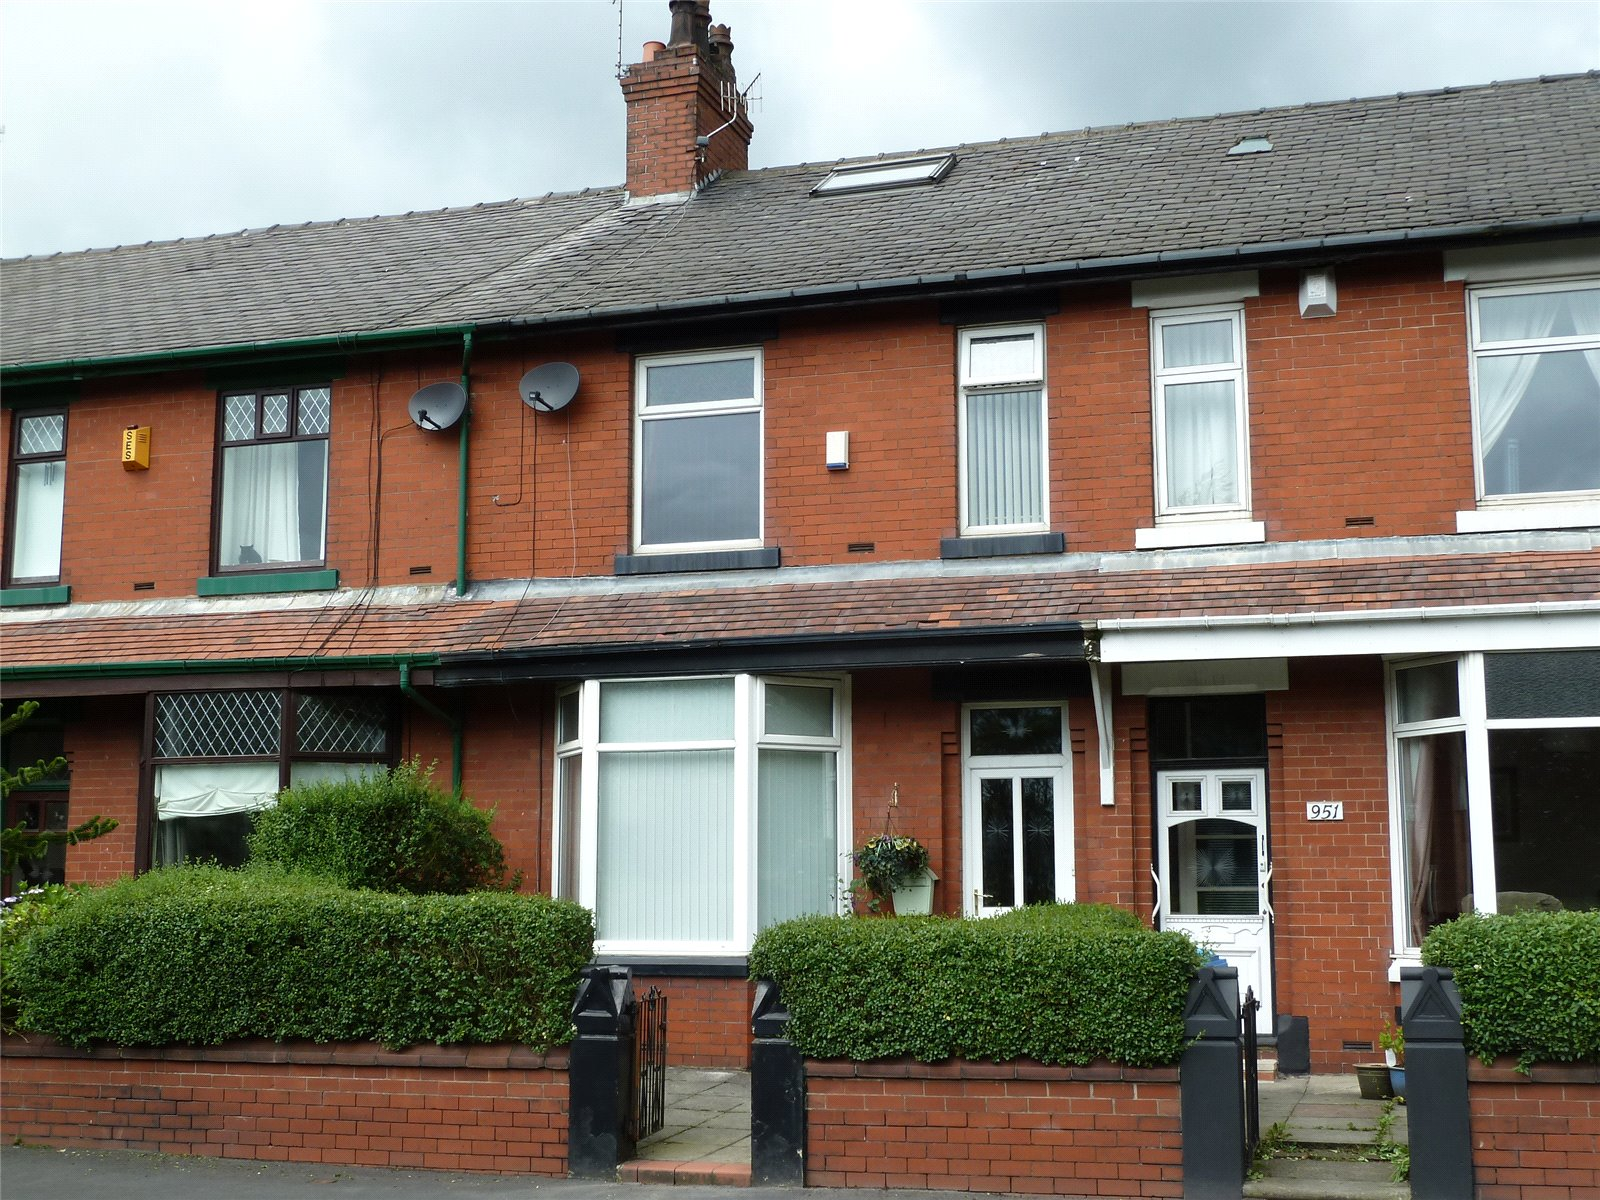 3 Bedrooms Terraced House for sale in Huddersfield Road, Scouthead, Saddleworth, OL4